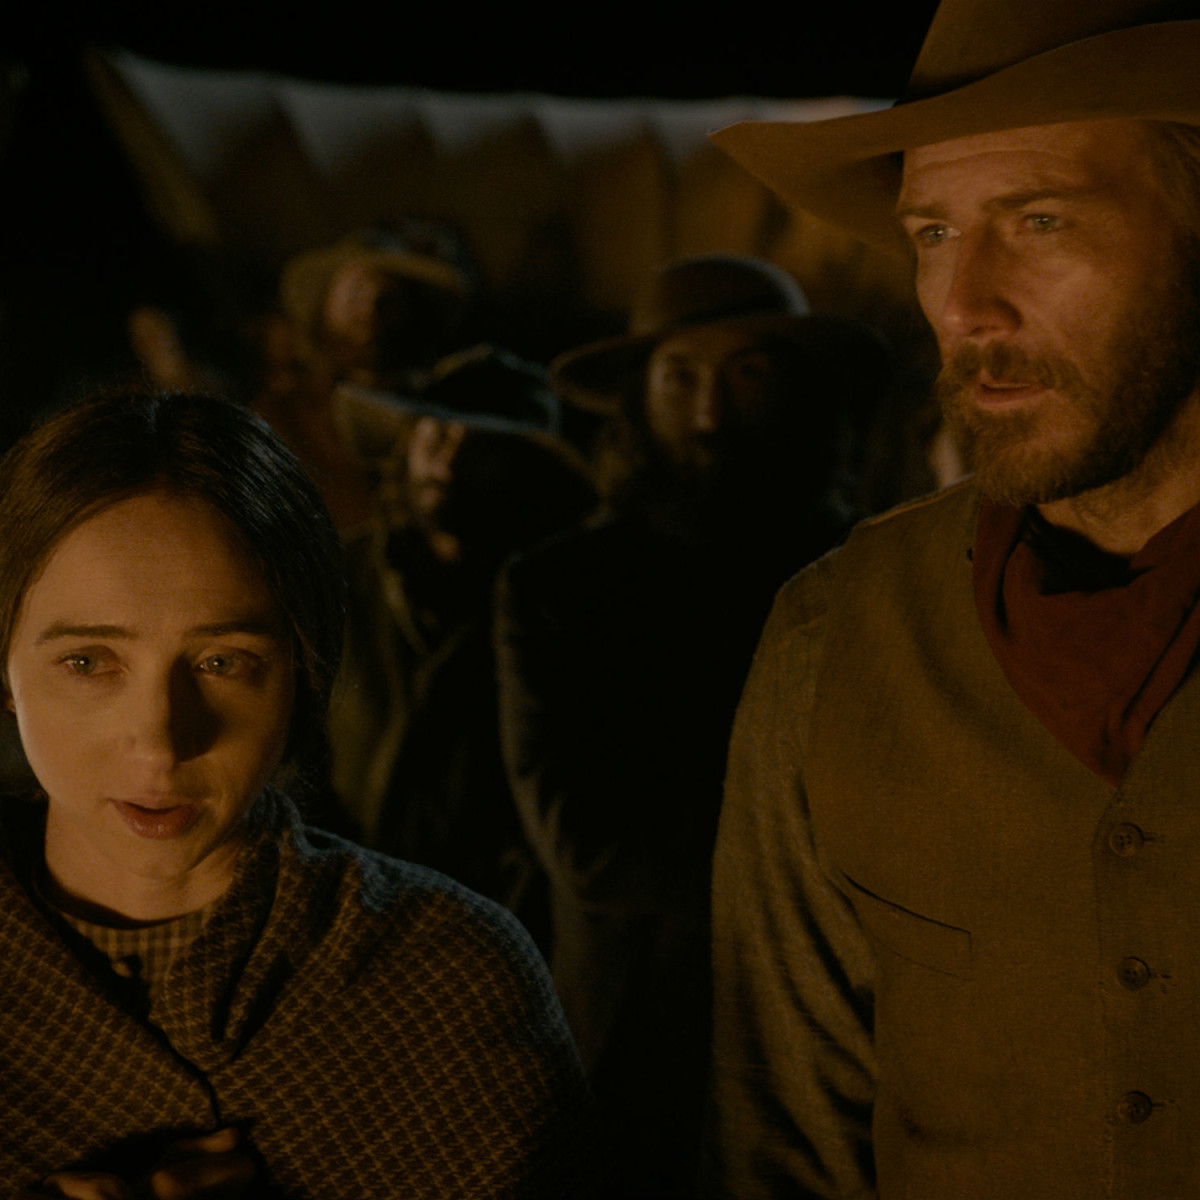 Zoe Kazan and Bill Heck in The Ballad of Buster Scruggs